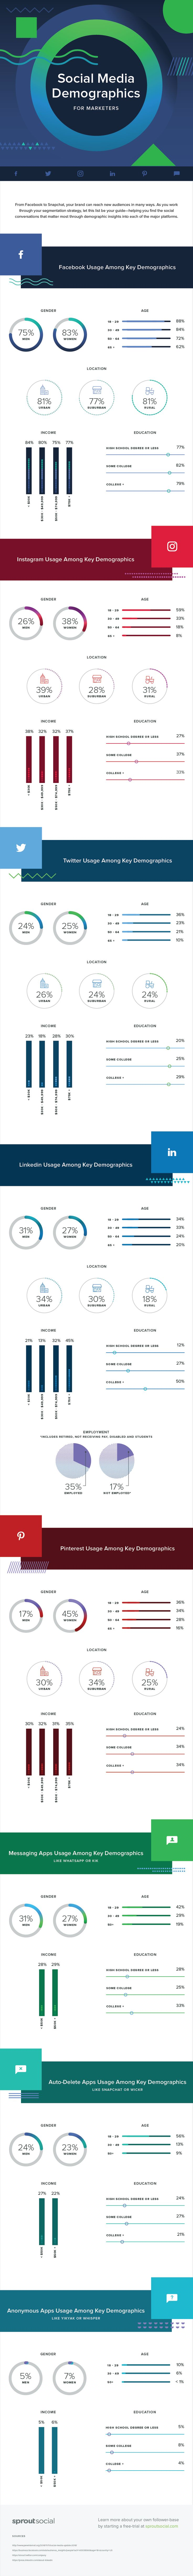 Social Media Demographics to Inform a Better Segmentation Strategy - #Infographic